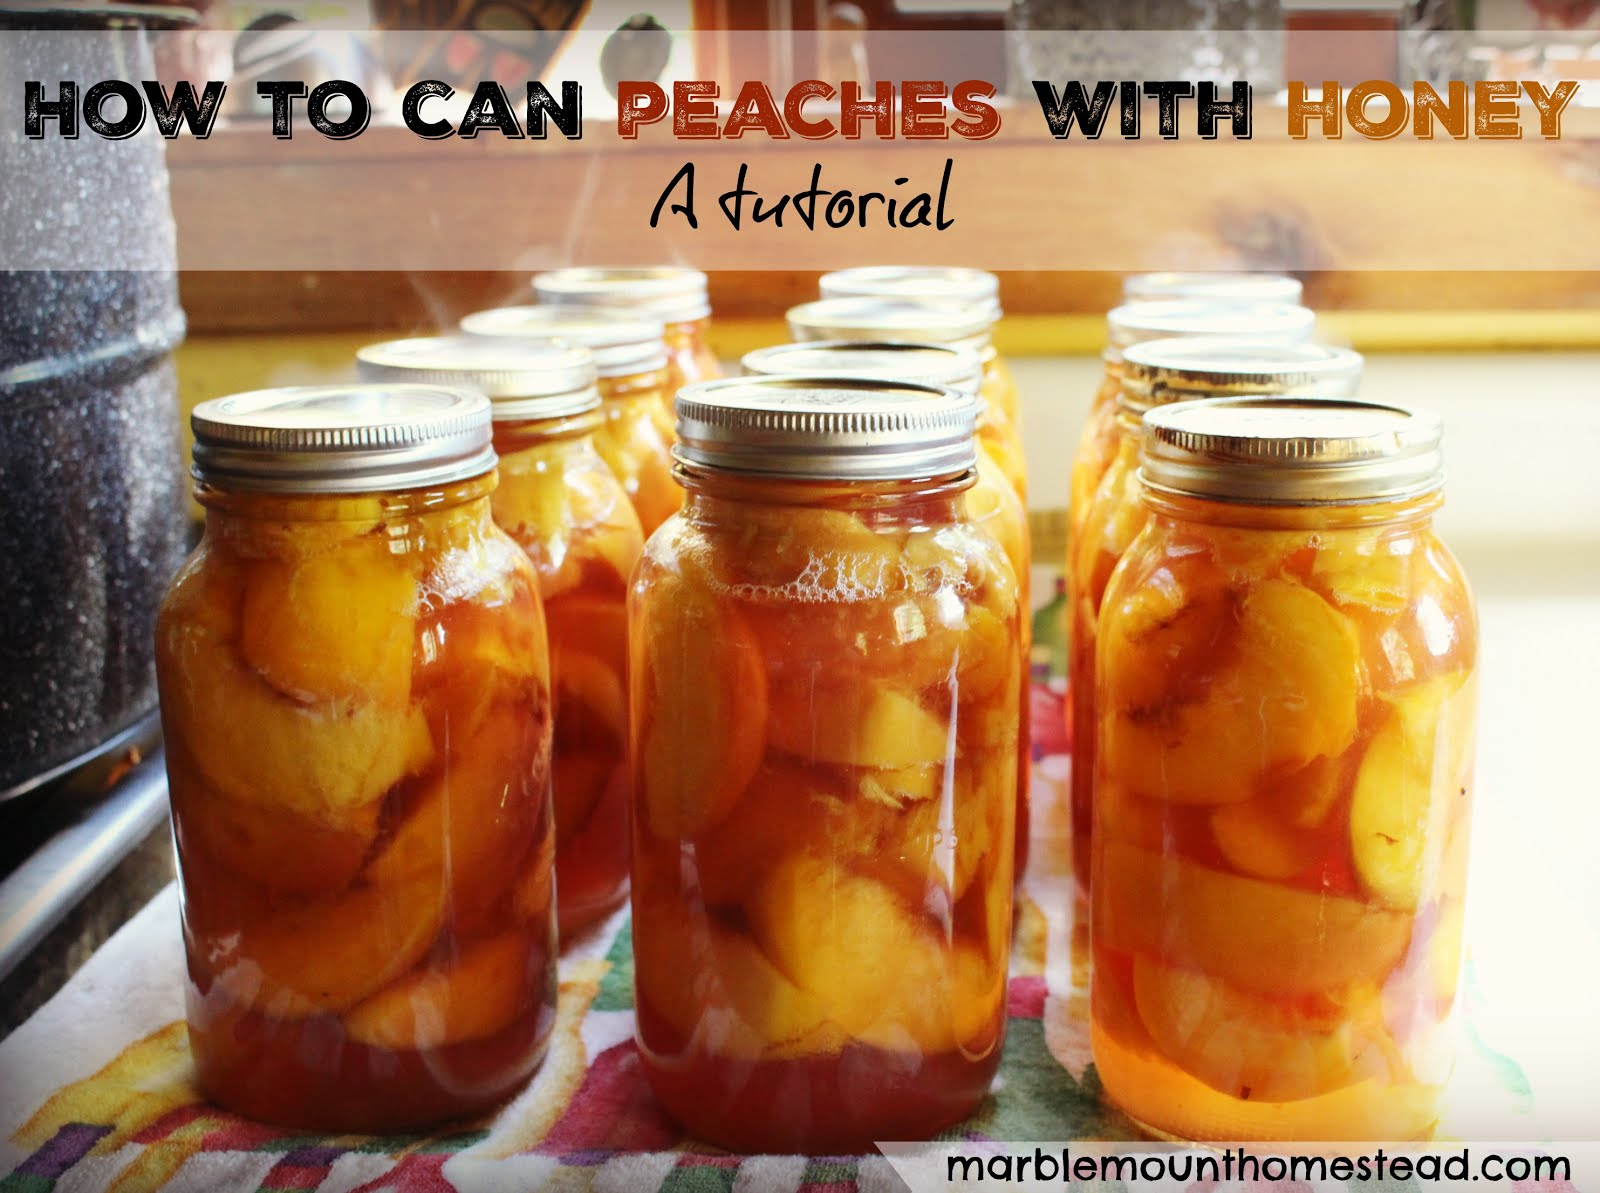 How to can peaches with honey